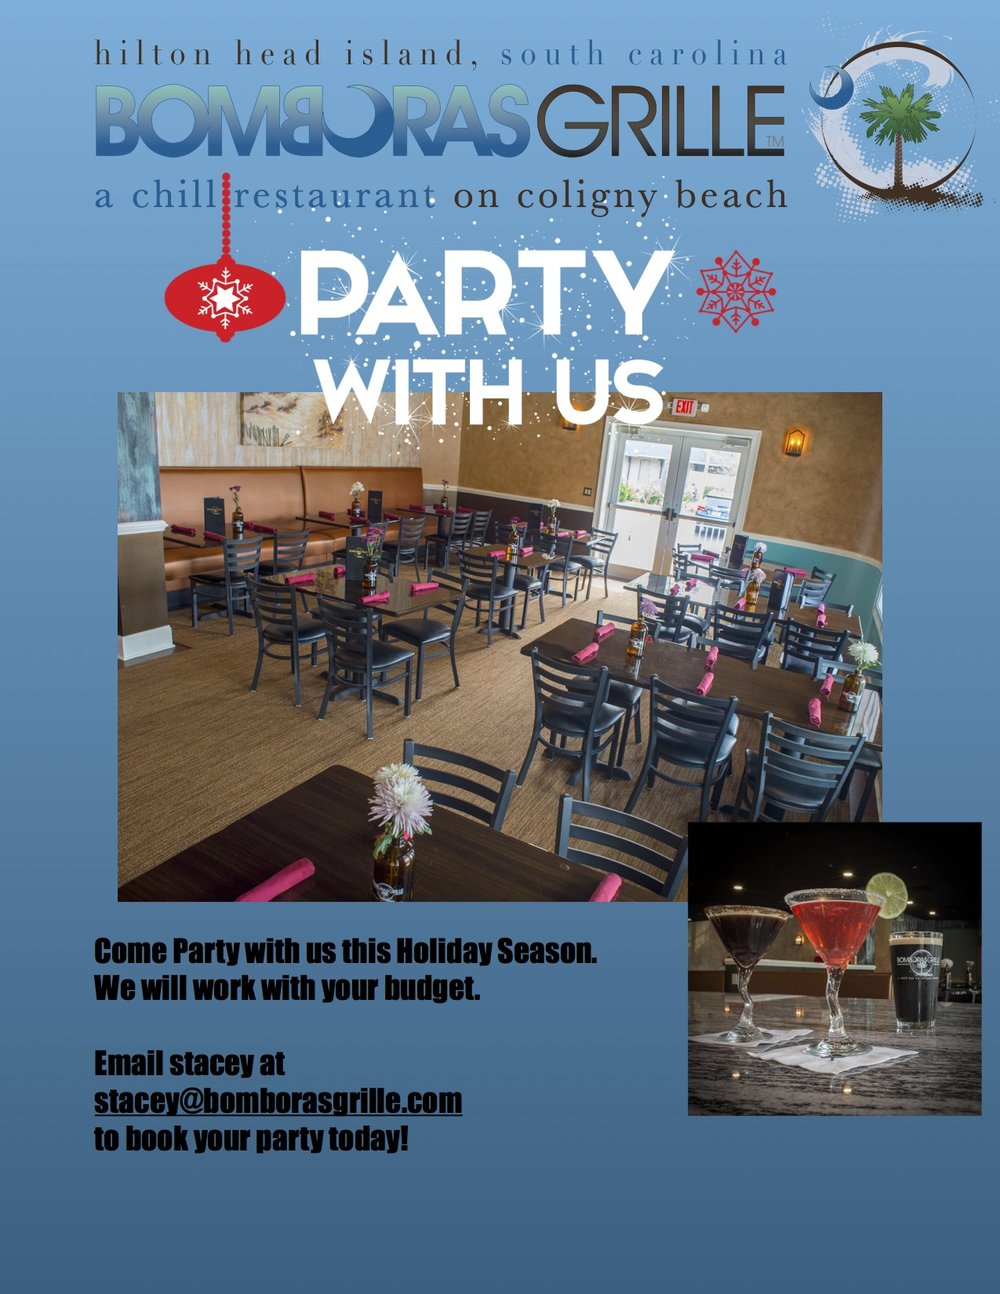 Book your party big or small at Bomboras Grille today!  We are now taking Holiday reservations.  Please email stacey at stacey@bomborasgrille.com to customize your party today!